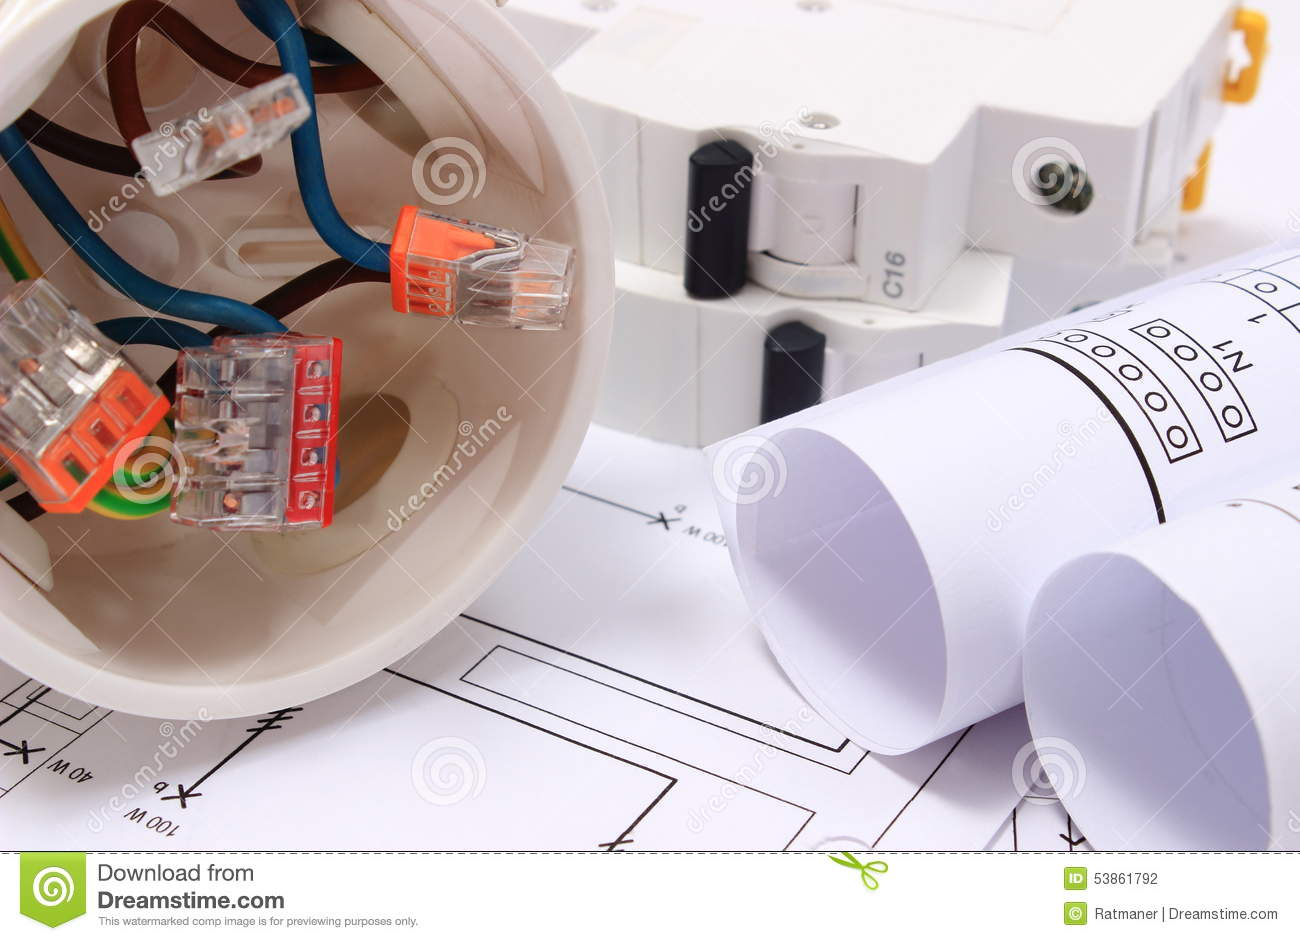 fuse box and construction equipment